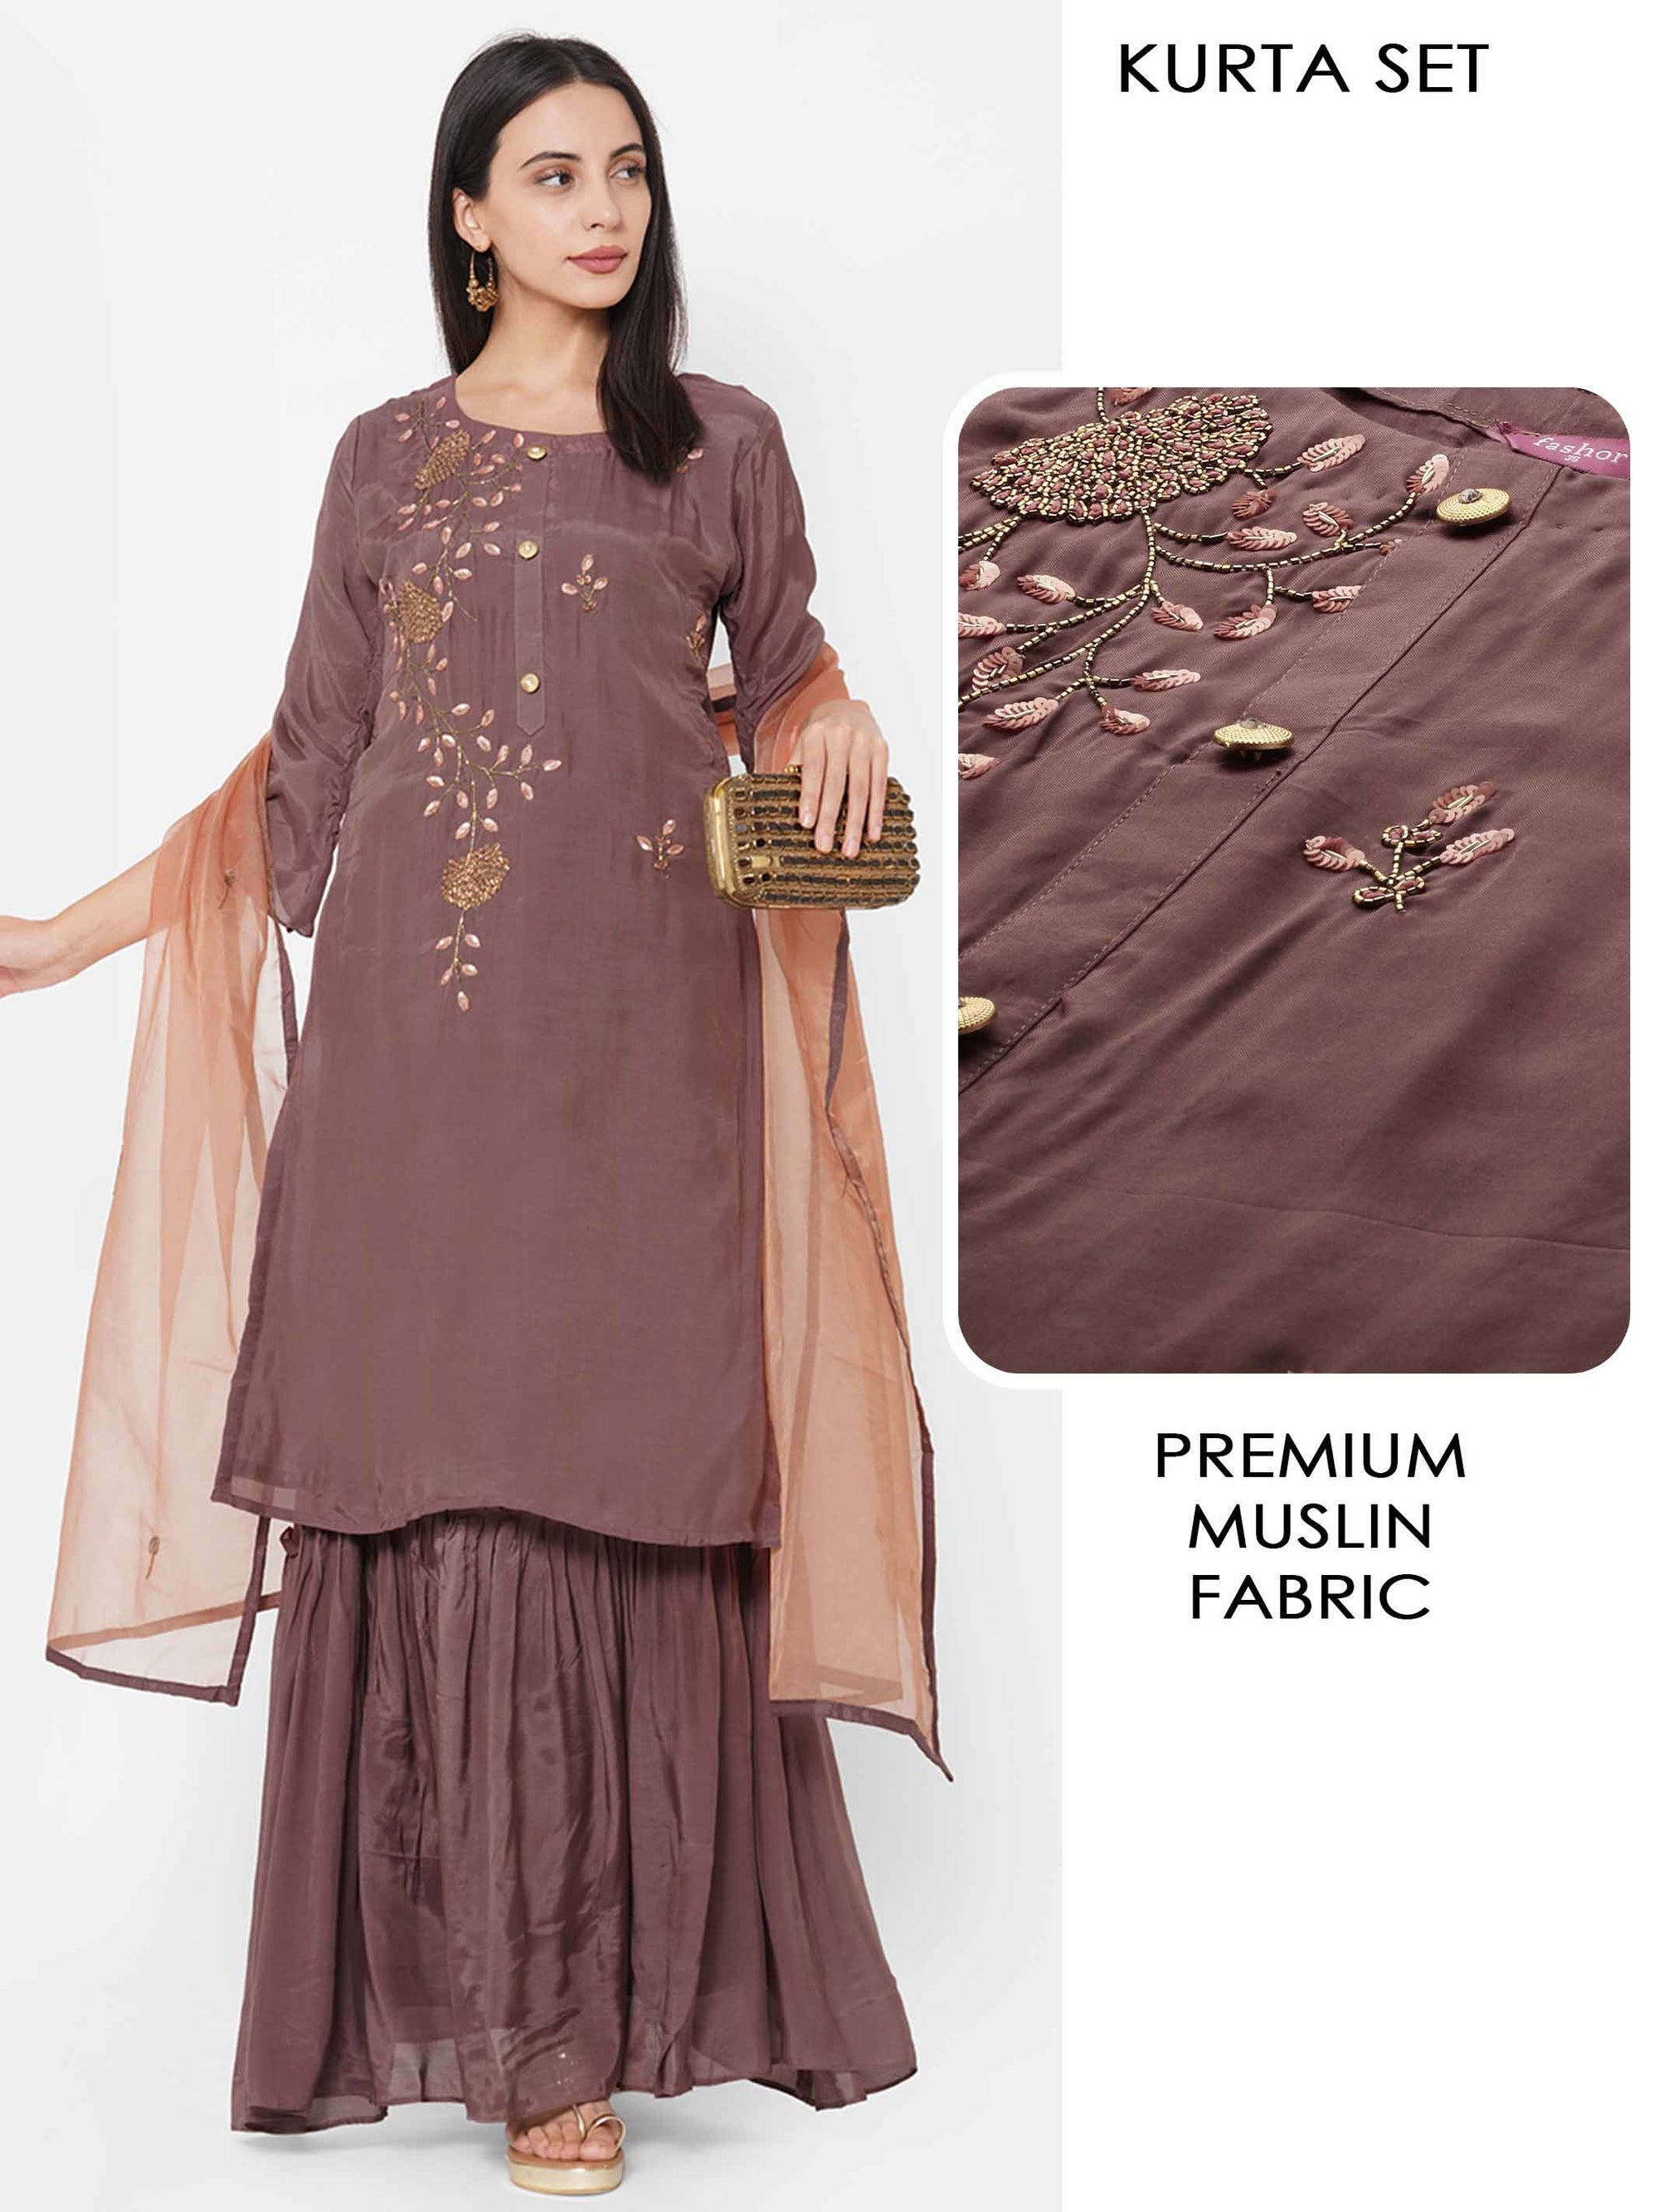 Floral Hand Embroidered Kurta with Solid Skirt & Dupatta & 2-Ply Mask - Brown